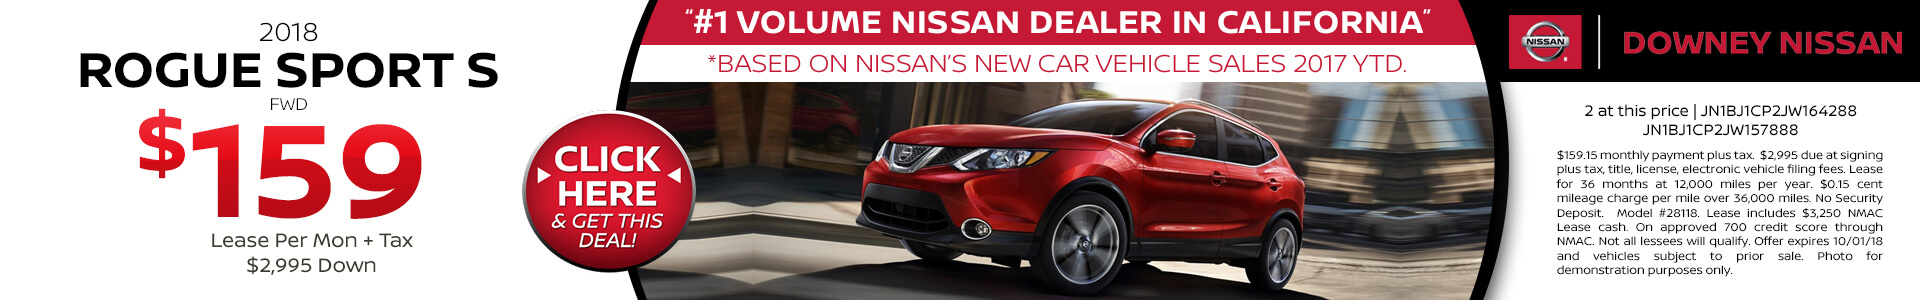 2018 Rogue Sport - Lease for $159